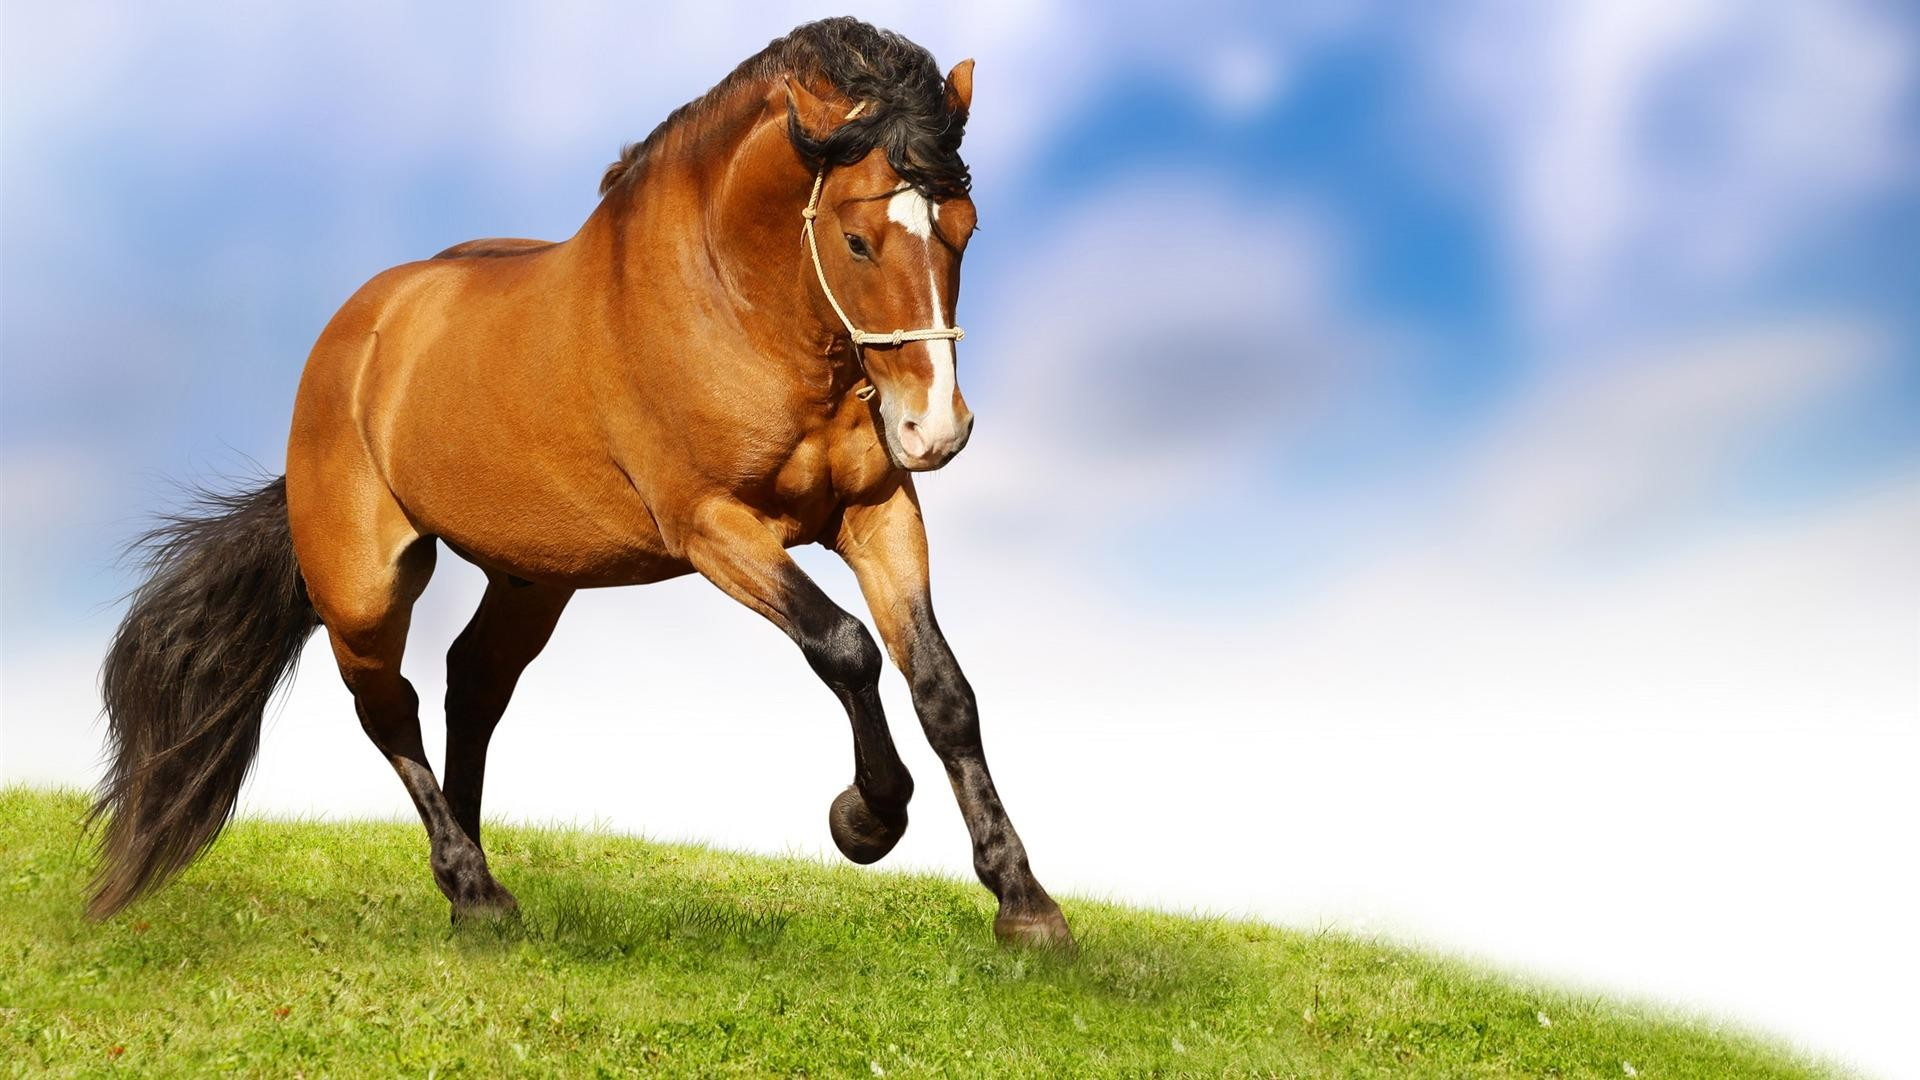 Christmas Horses Wallpaper for Computer | Home » Animals pictures » Horse  wallpapers